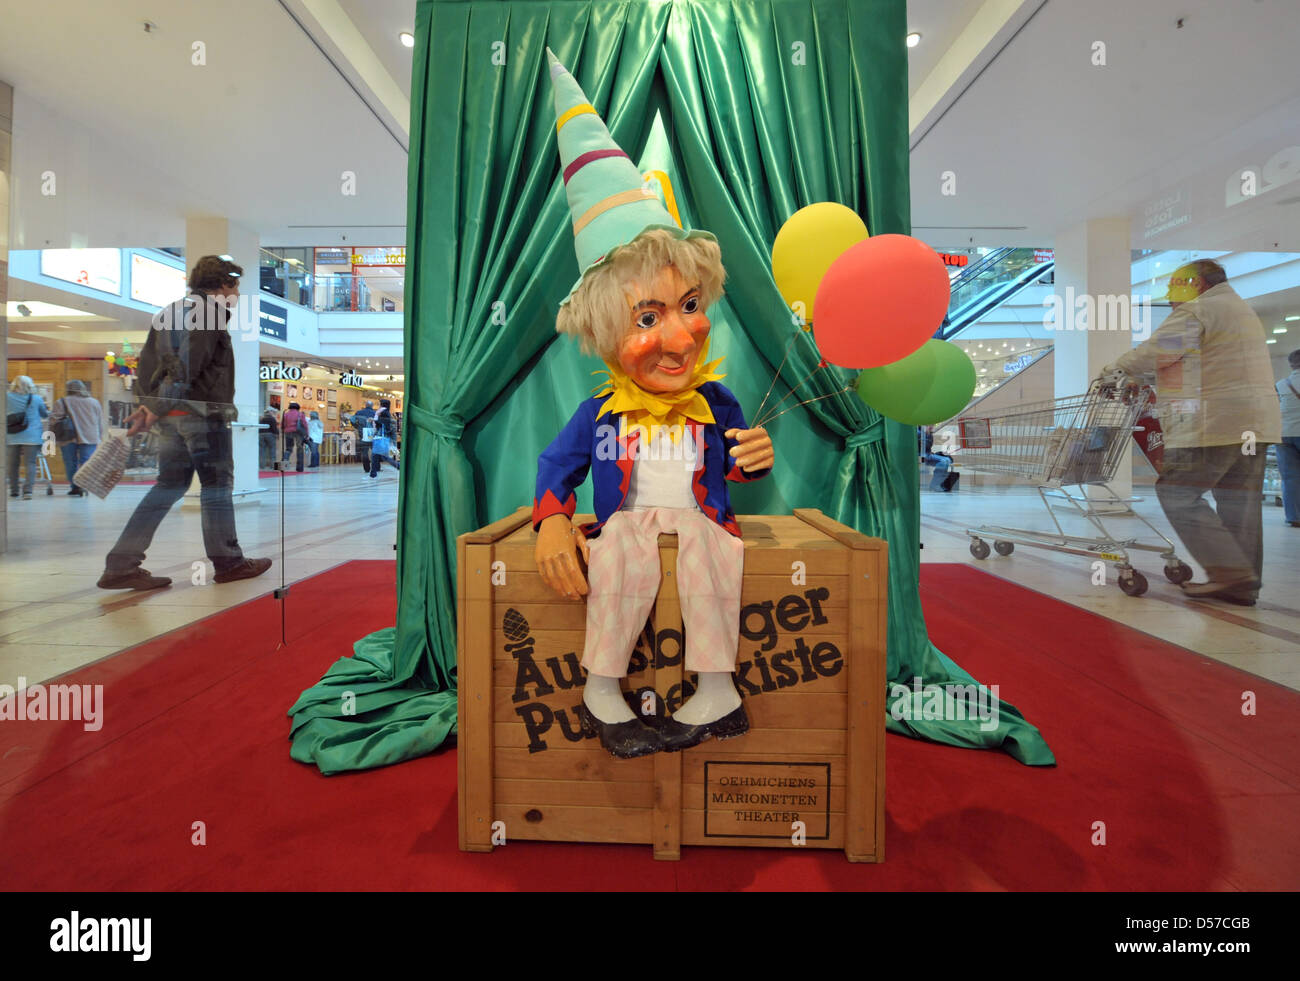 The buffoon sits on the famous Augsburger Puppenkiste of marionette theatre Augsburger Puppenkiste at Thuringia - Stock Image